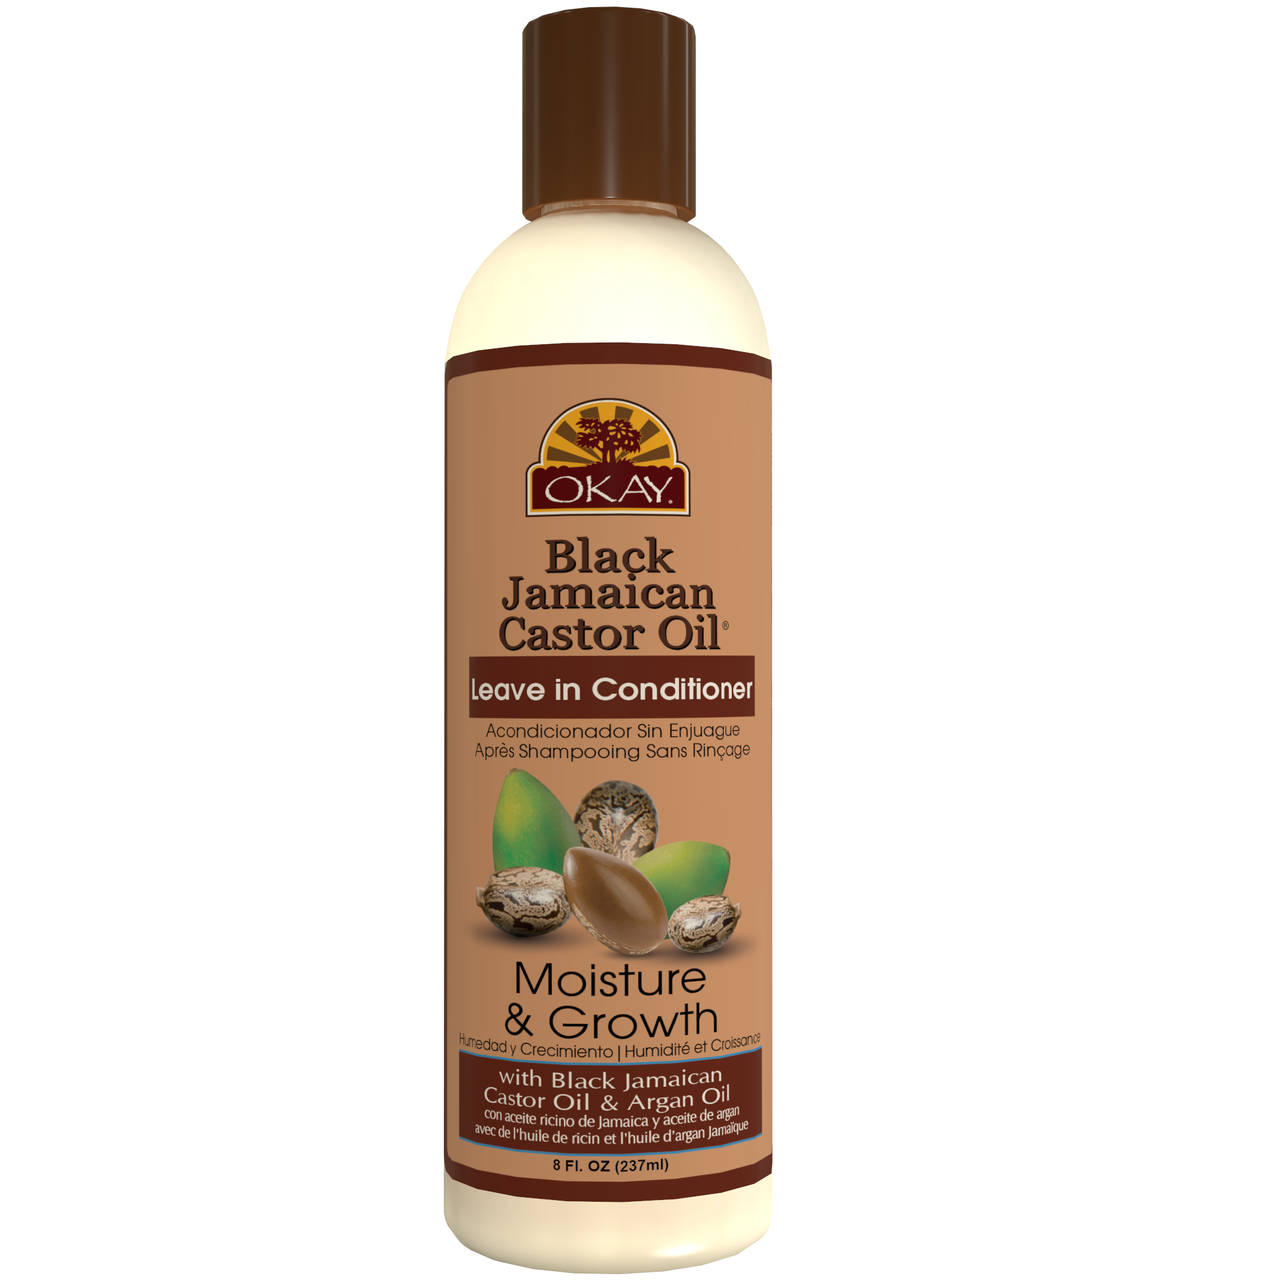 Okay Black Jamaican Castor Oil Moisture Growth Leave In Conditioner Helps Moisturize Regrow Strong Healthy Hair Sulfate Silicone Paraben Free For All Hair Types And Textures Made In Usa 8oz